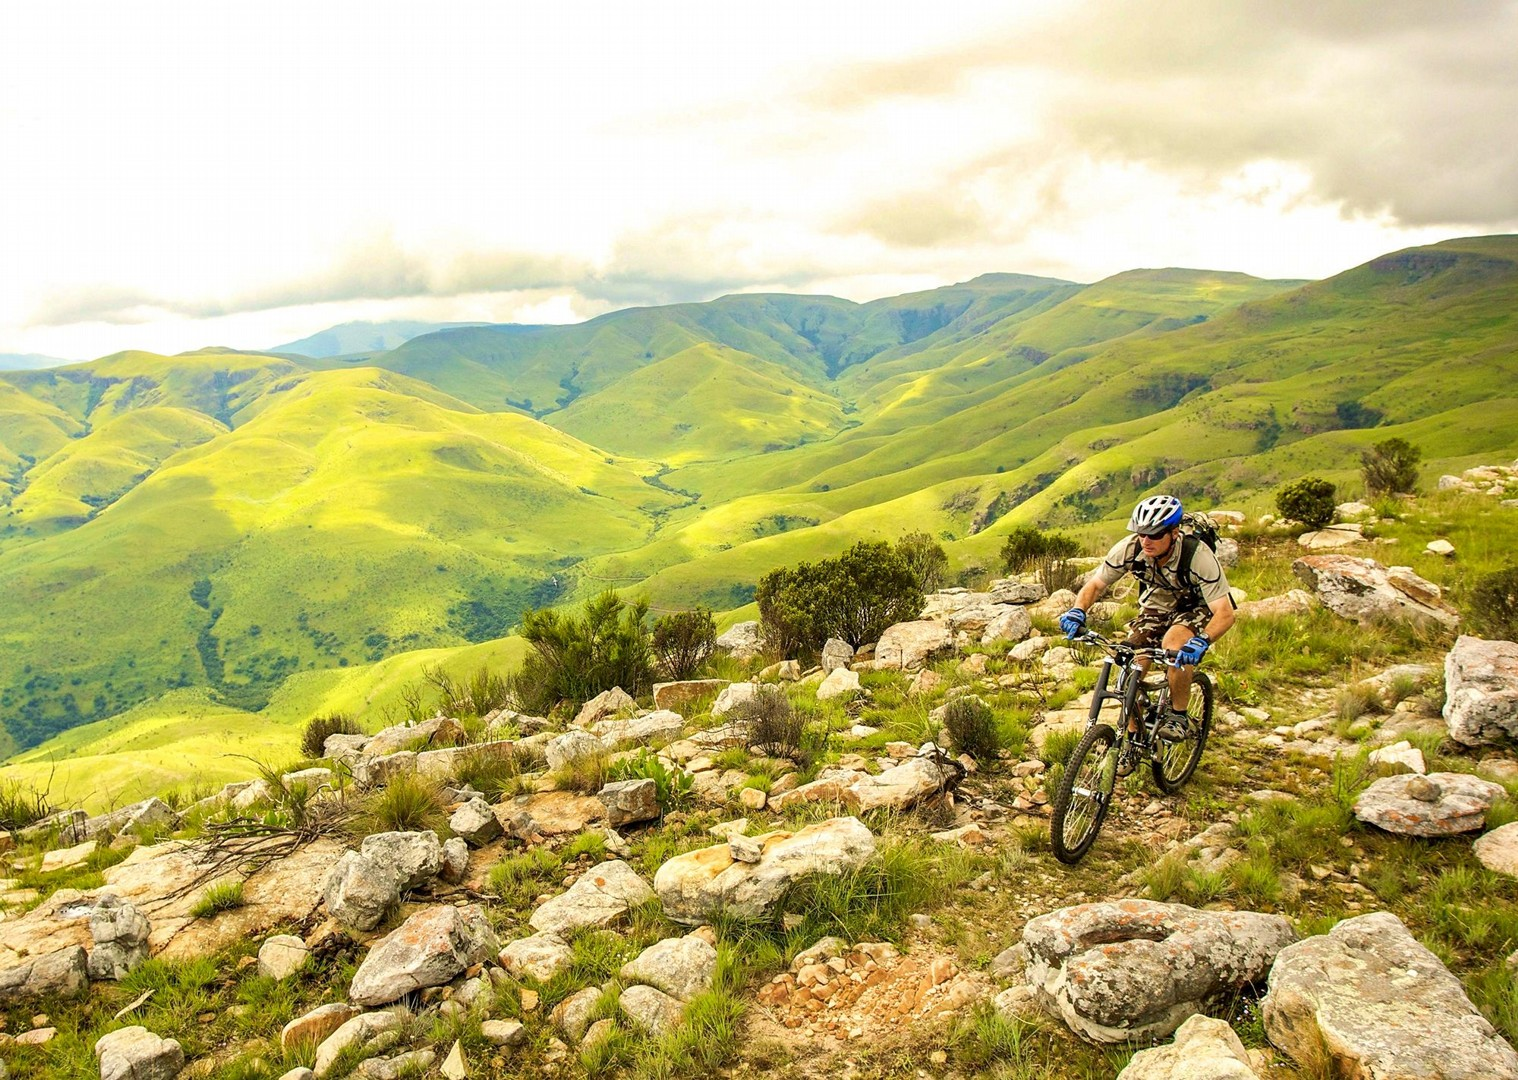 mountain-biking-south-africa-and-botswana-skedaddle-holiday-guided-trip.jpg - NEW! South Africa and Botswana - Mountain Biking